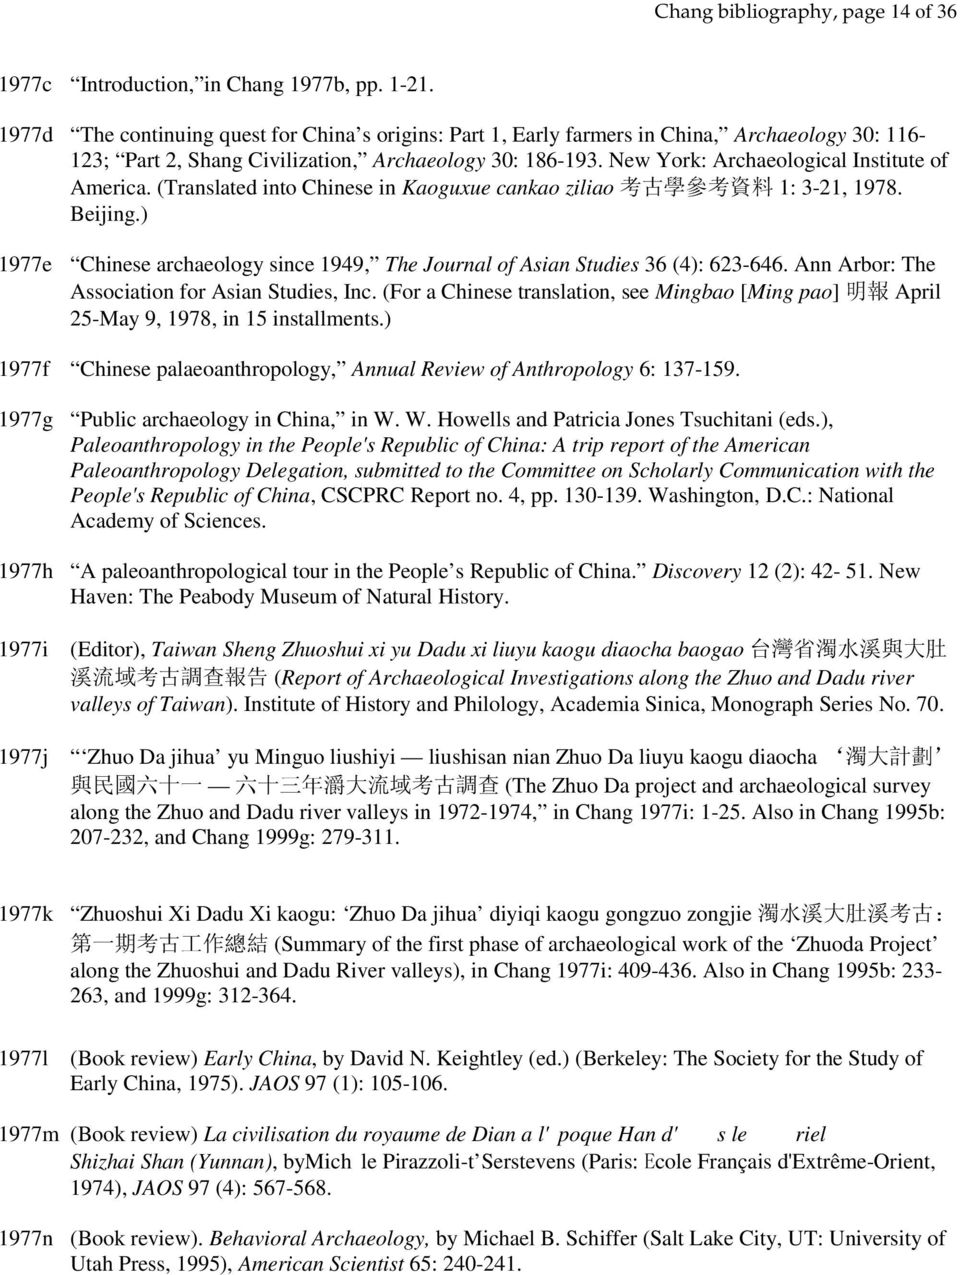 New York: Archaeological Institute of America. (Translated into Chinese in Kaoguxue cankao ziliao L m 1: 3-21, 1978. Beijing.